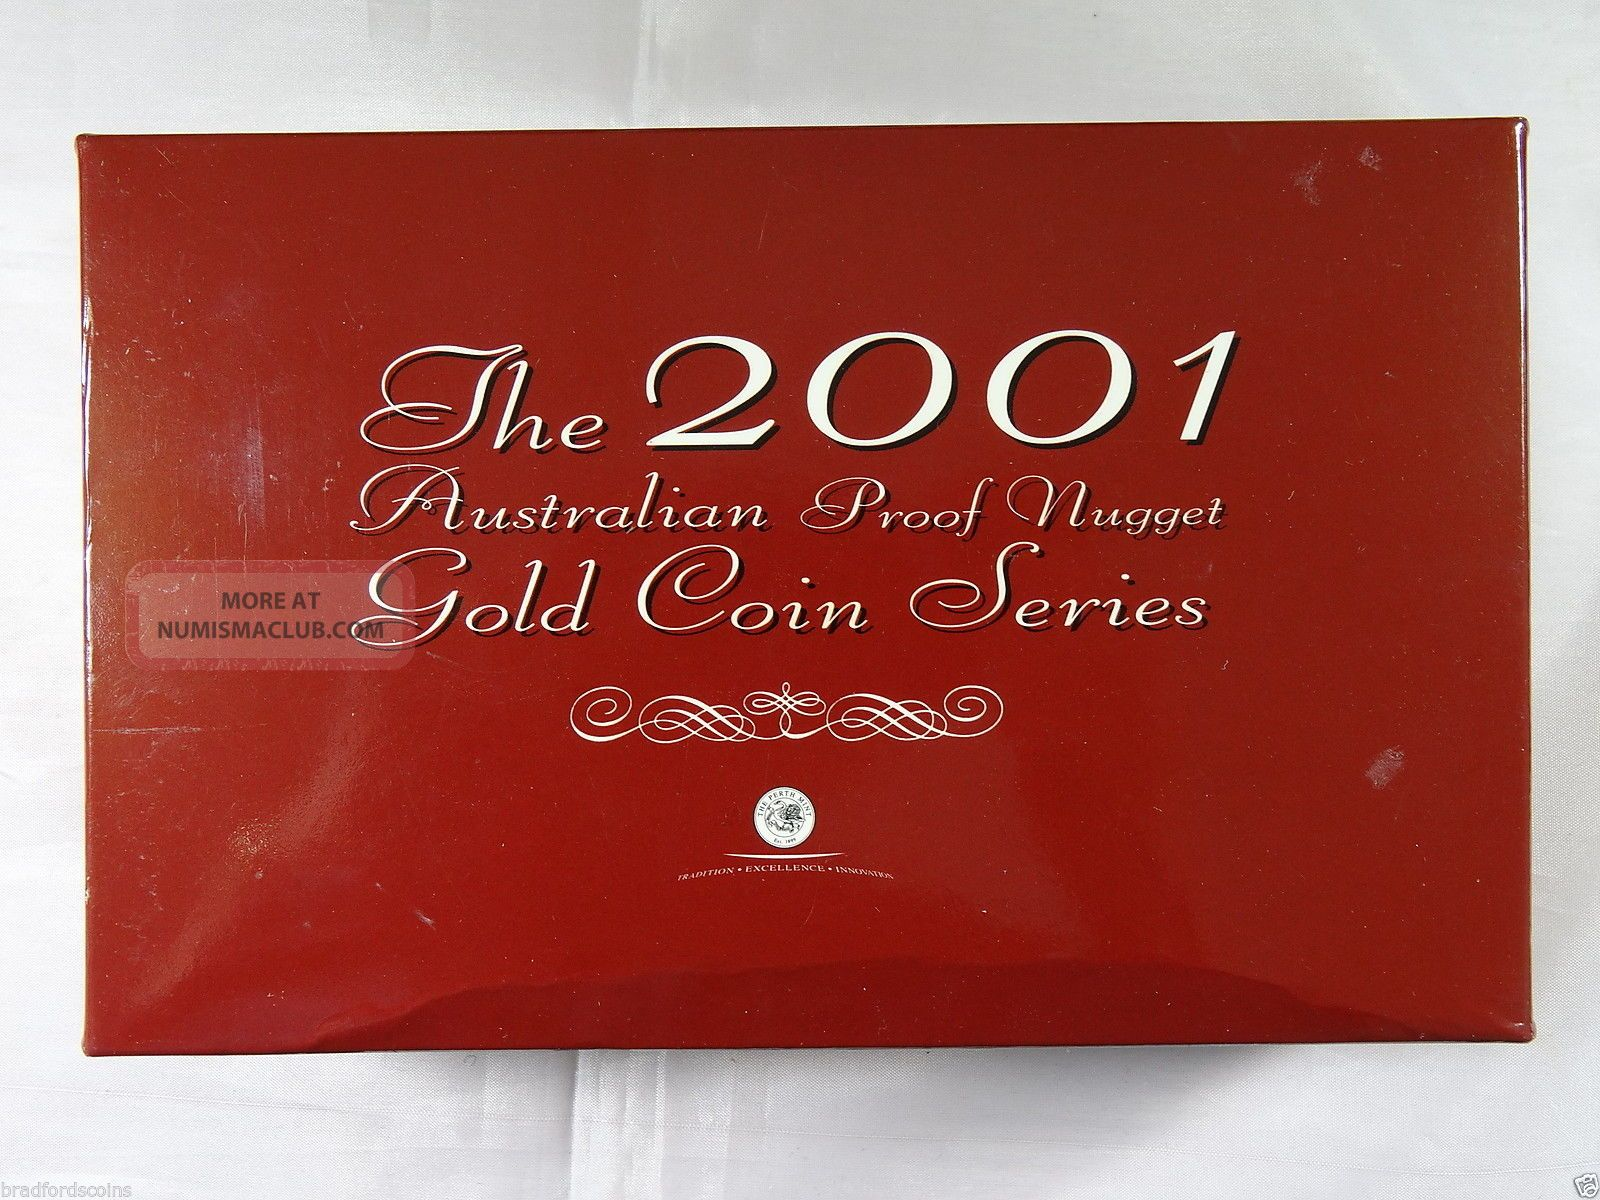 The 2001 Australian Proof Nugget Gold Coin Series Coins: World photo